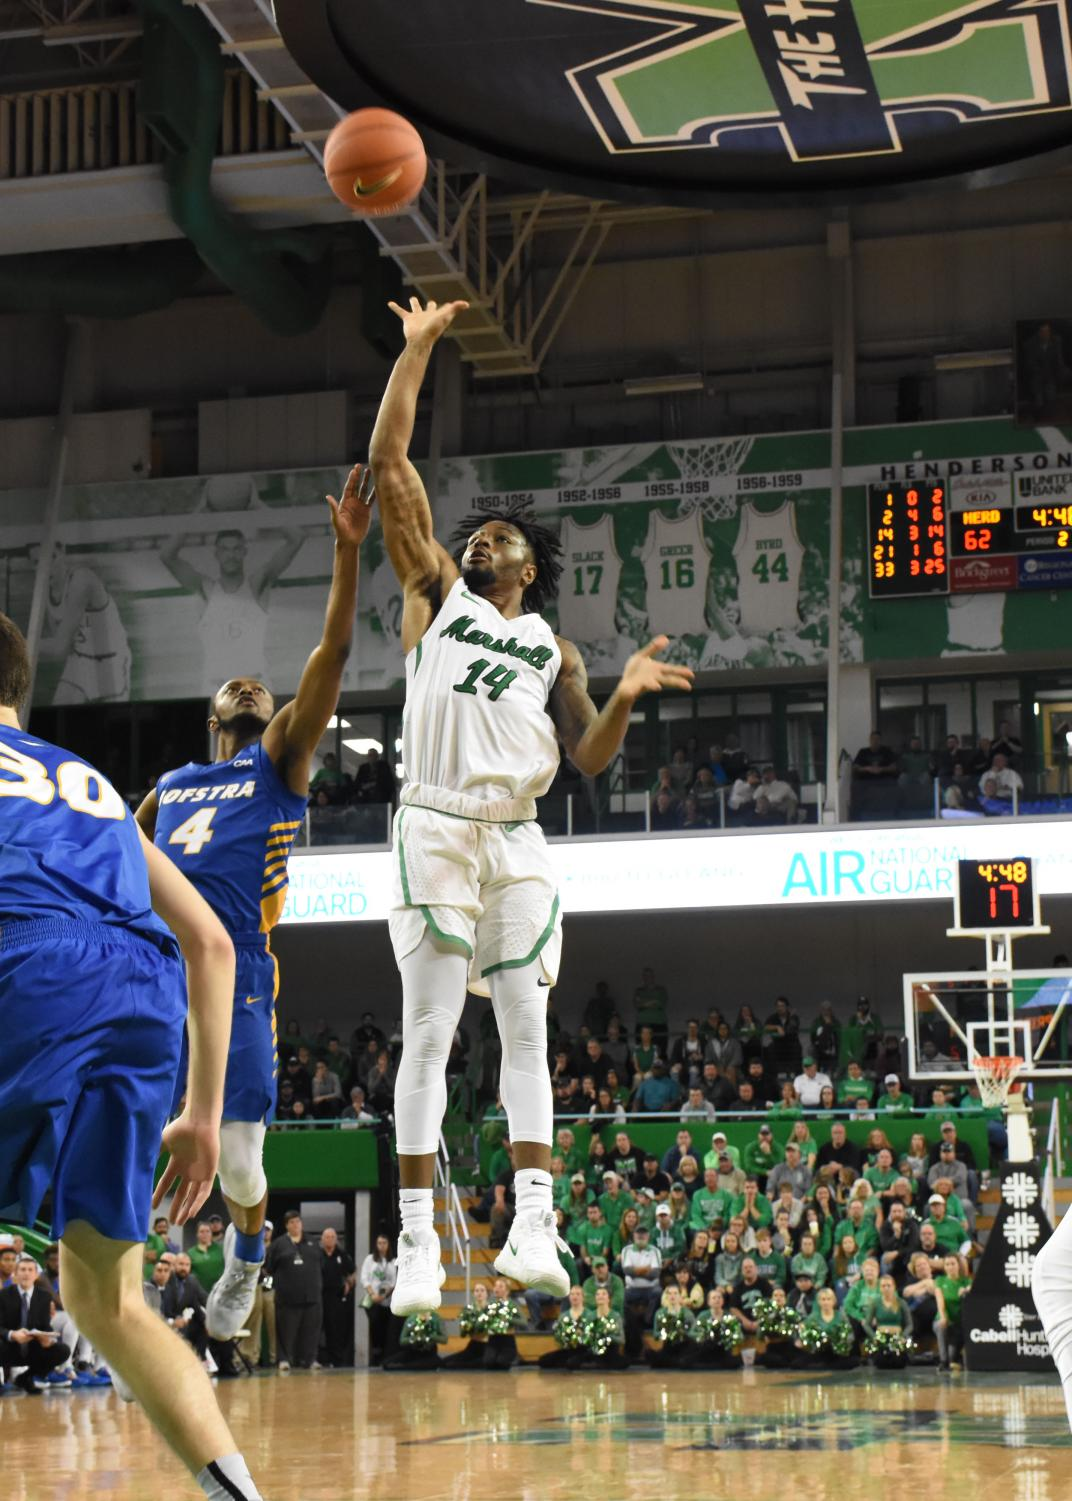 Senior guard C.J. Burks puts up a floater during Marshall's home defeat of Hofstra. Burks scores 23 points with six assists.